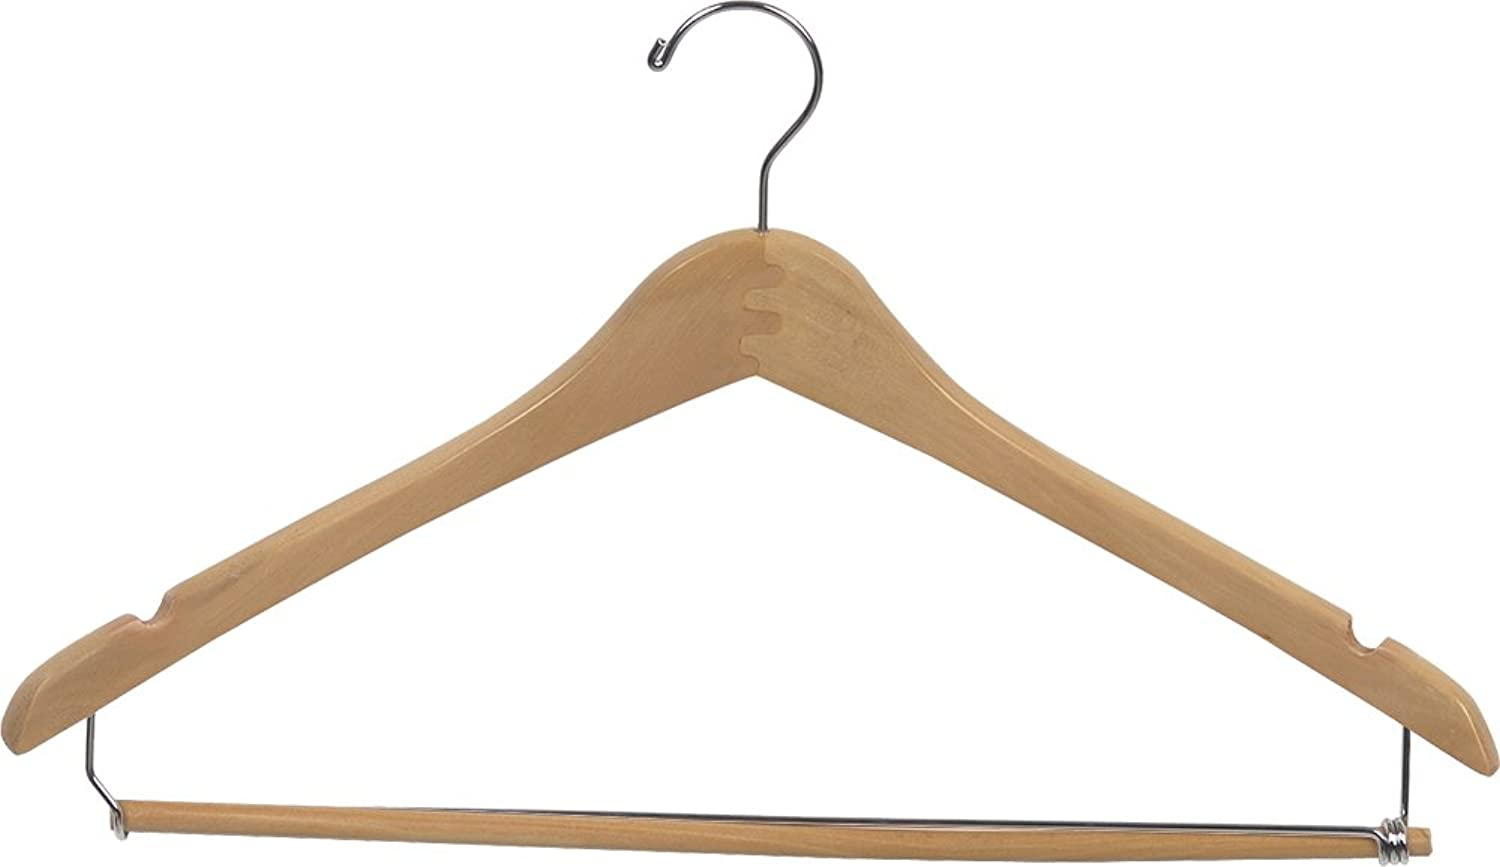 The Great American Hanger Company Curved Wood Suit Hanger w Locking Bar, Box of 25 17 Inch Hangers w Natural Finish & Chrome Swivel Hook & Notches for Shirt Dress or Pants